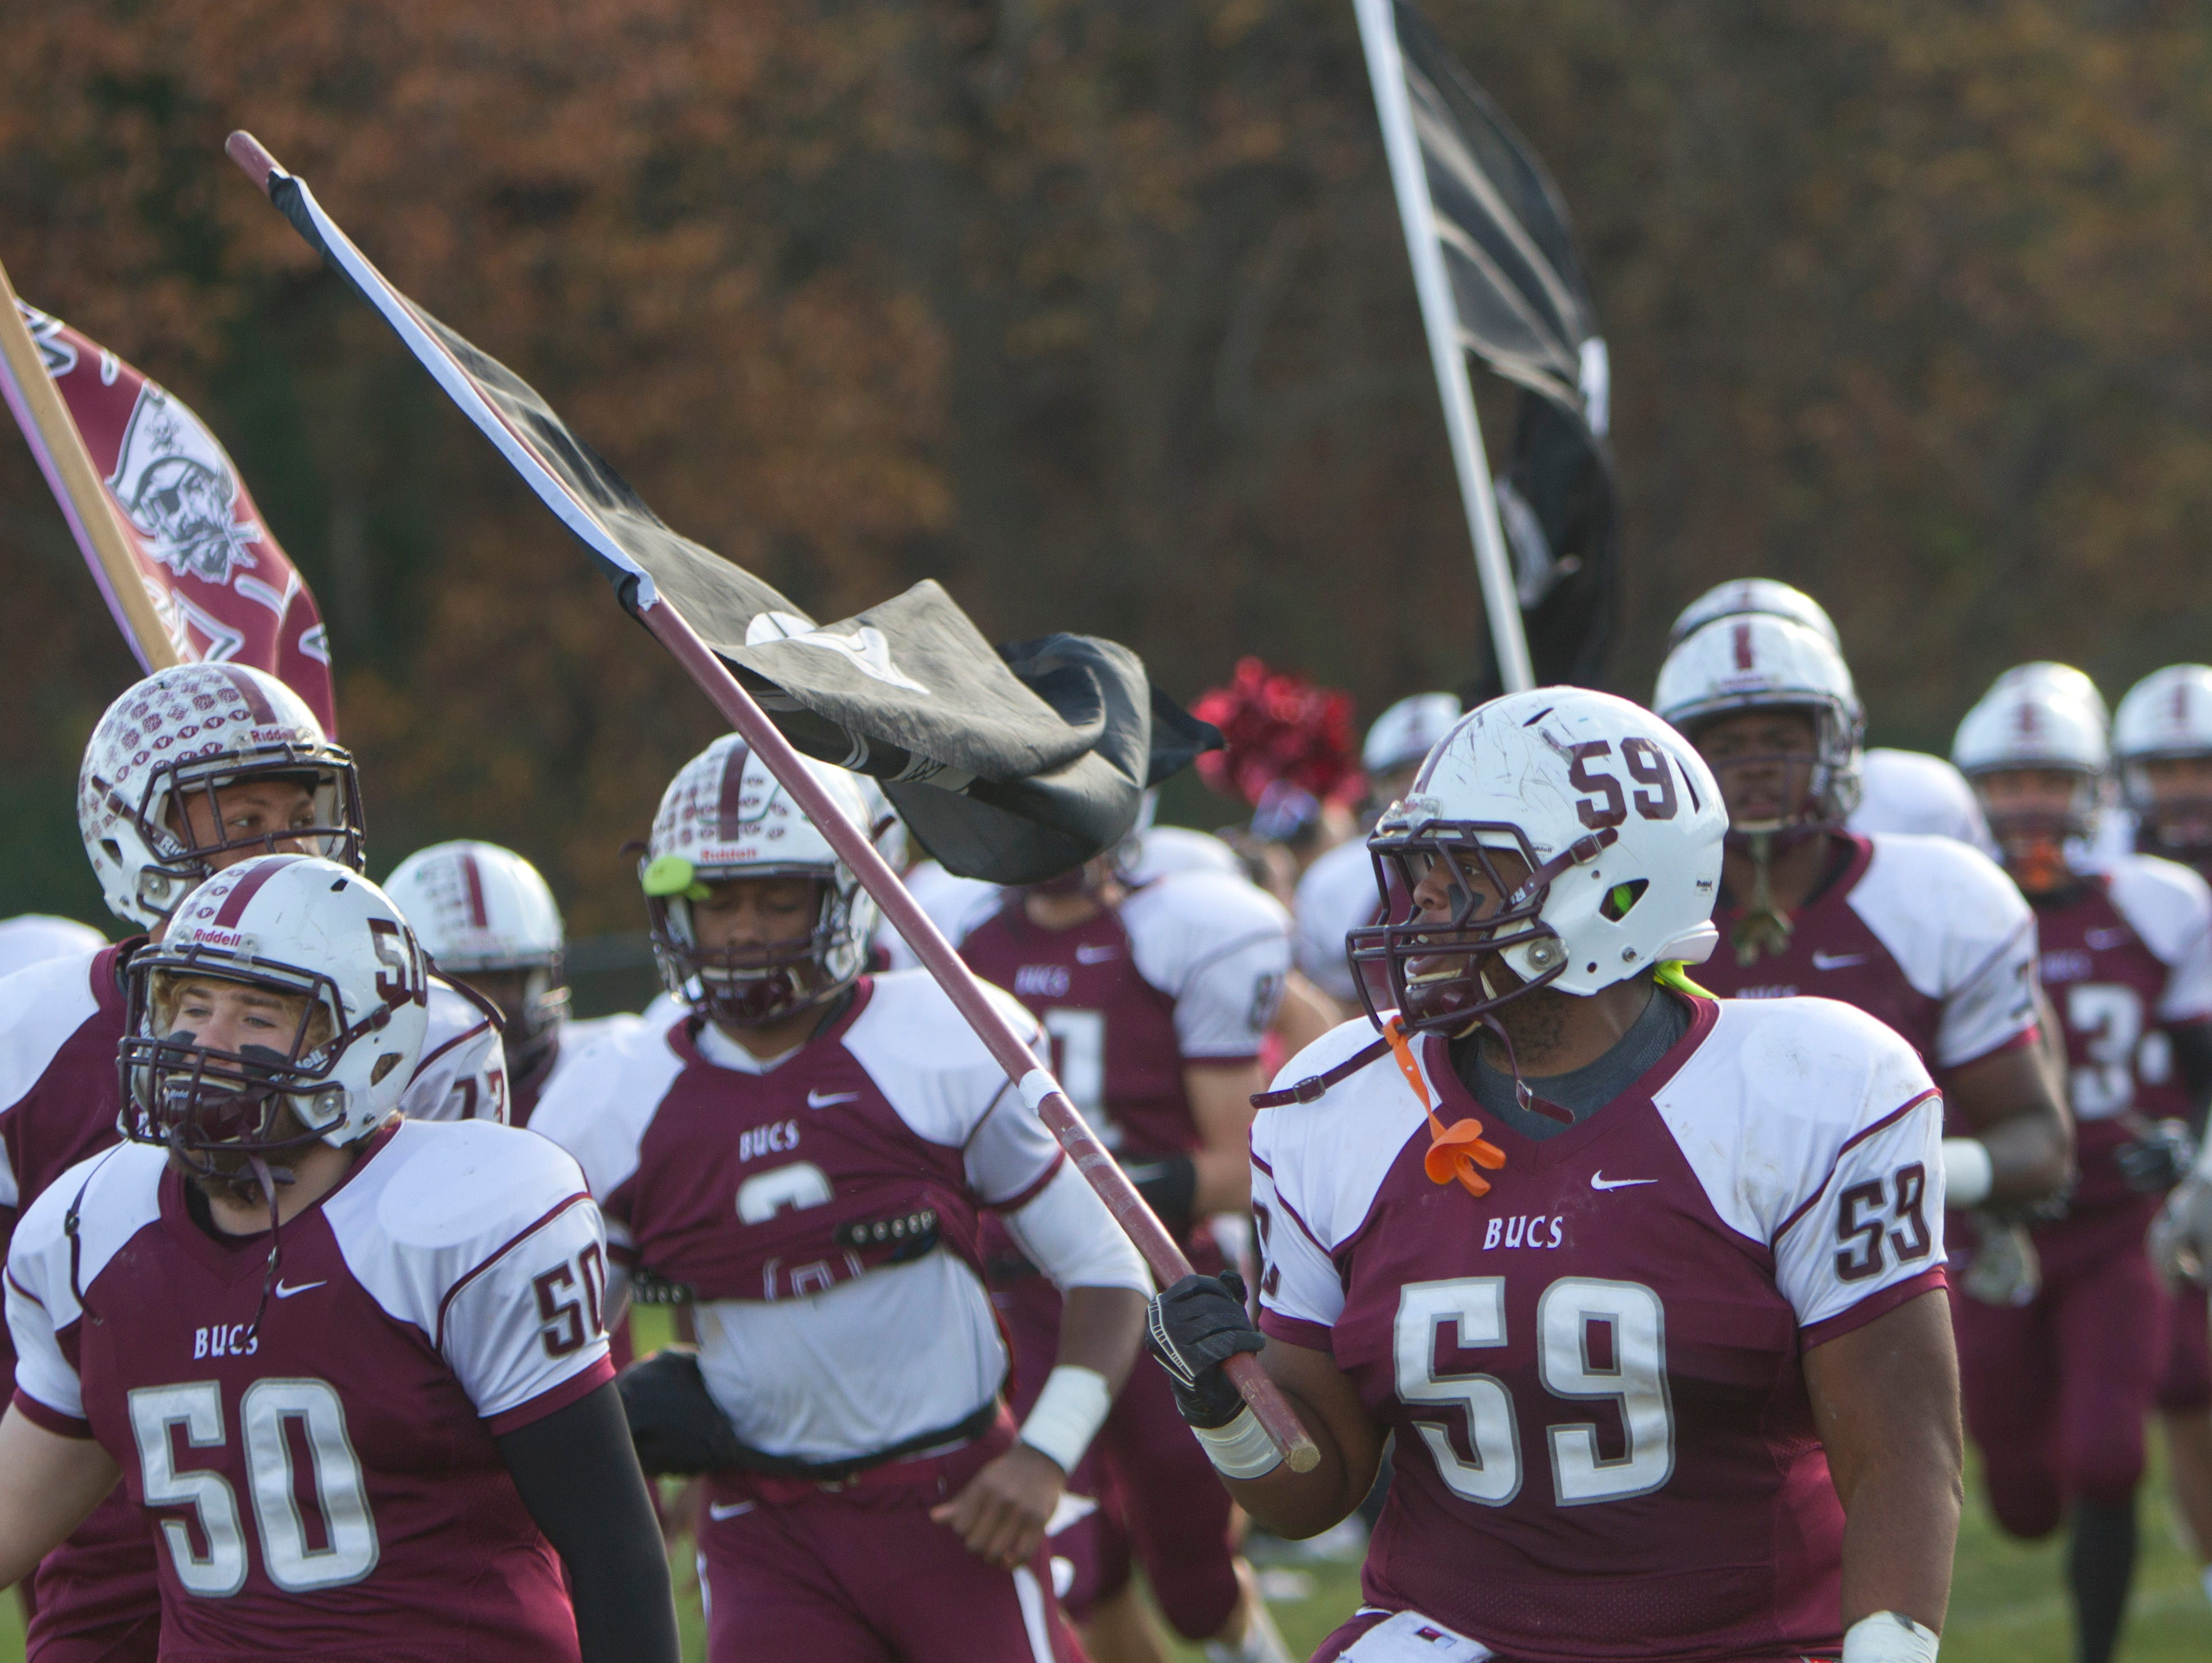 Long Branch vs Red Bank Regional Thanksgiving Day Football game in Red Bank NJ on November 26, 2015.